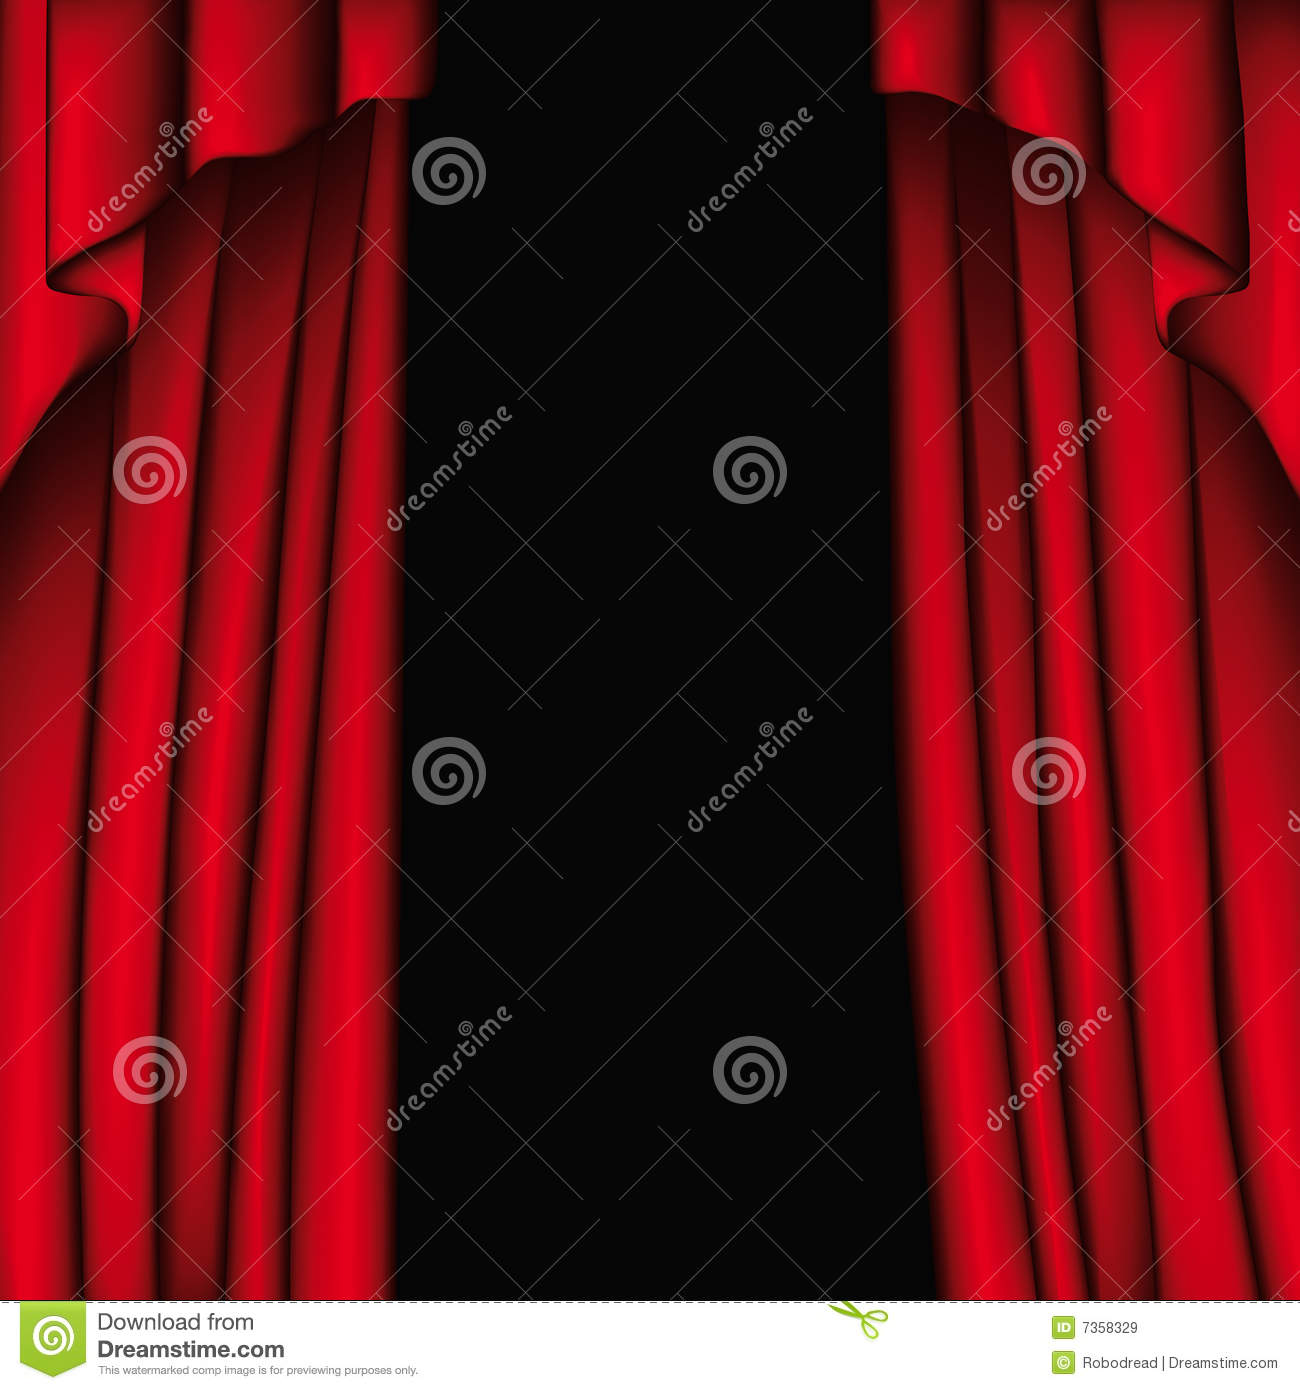 Blue stage curtains blue stage curtain vector free vector in - Background Curtain Illustration Vector